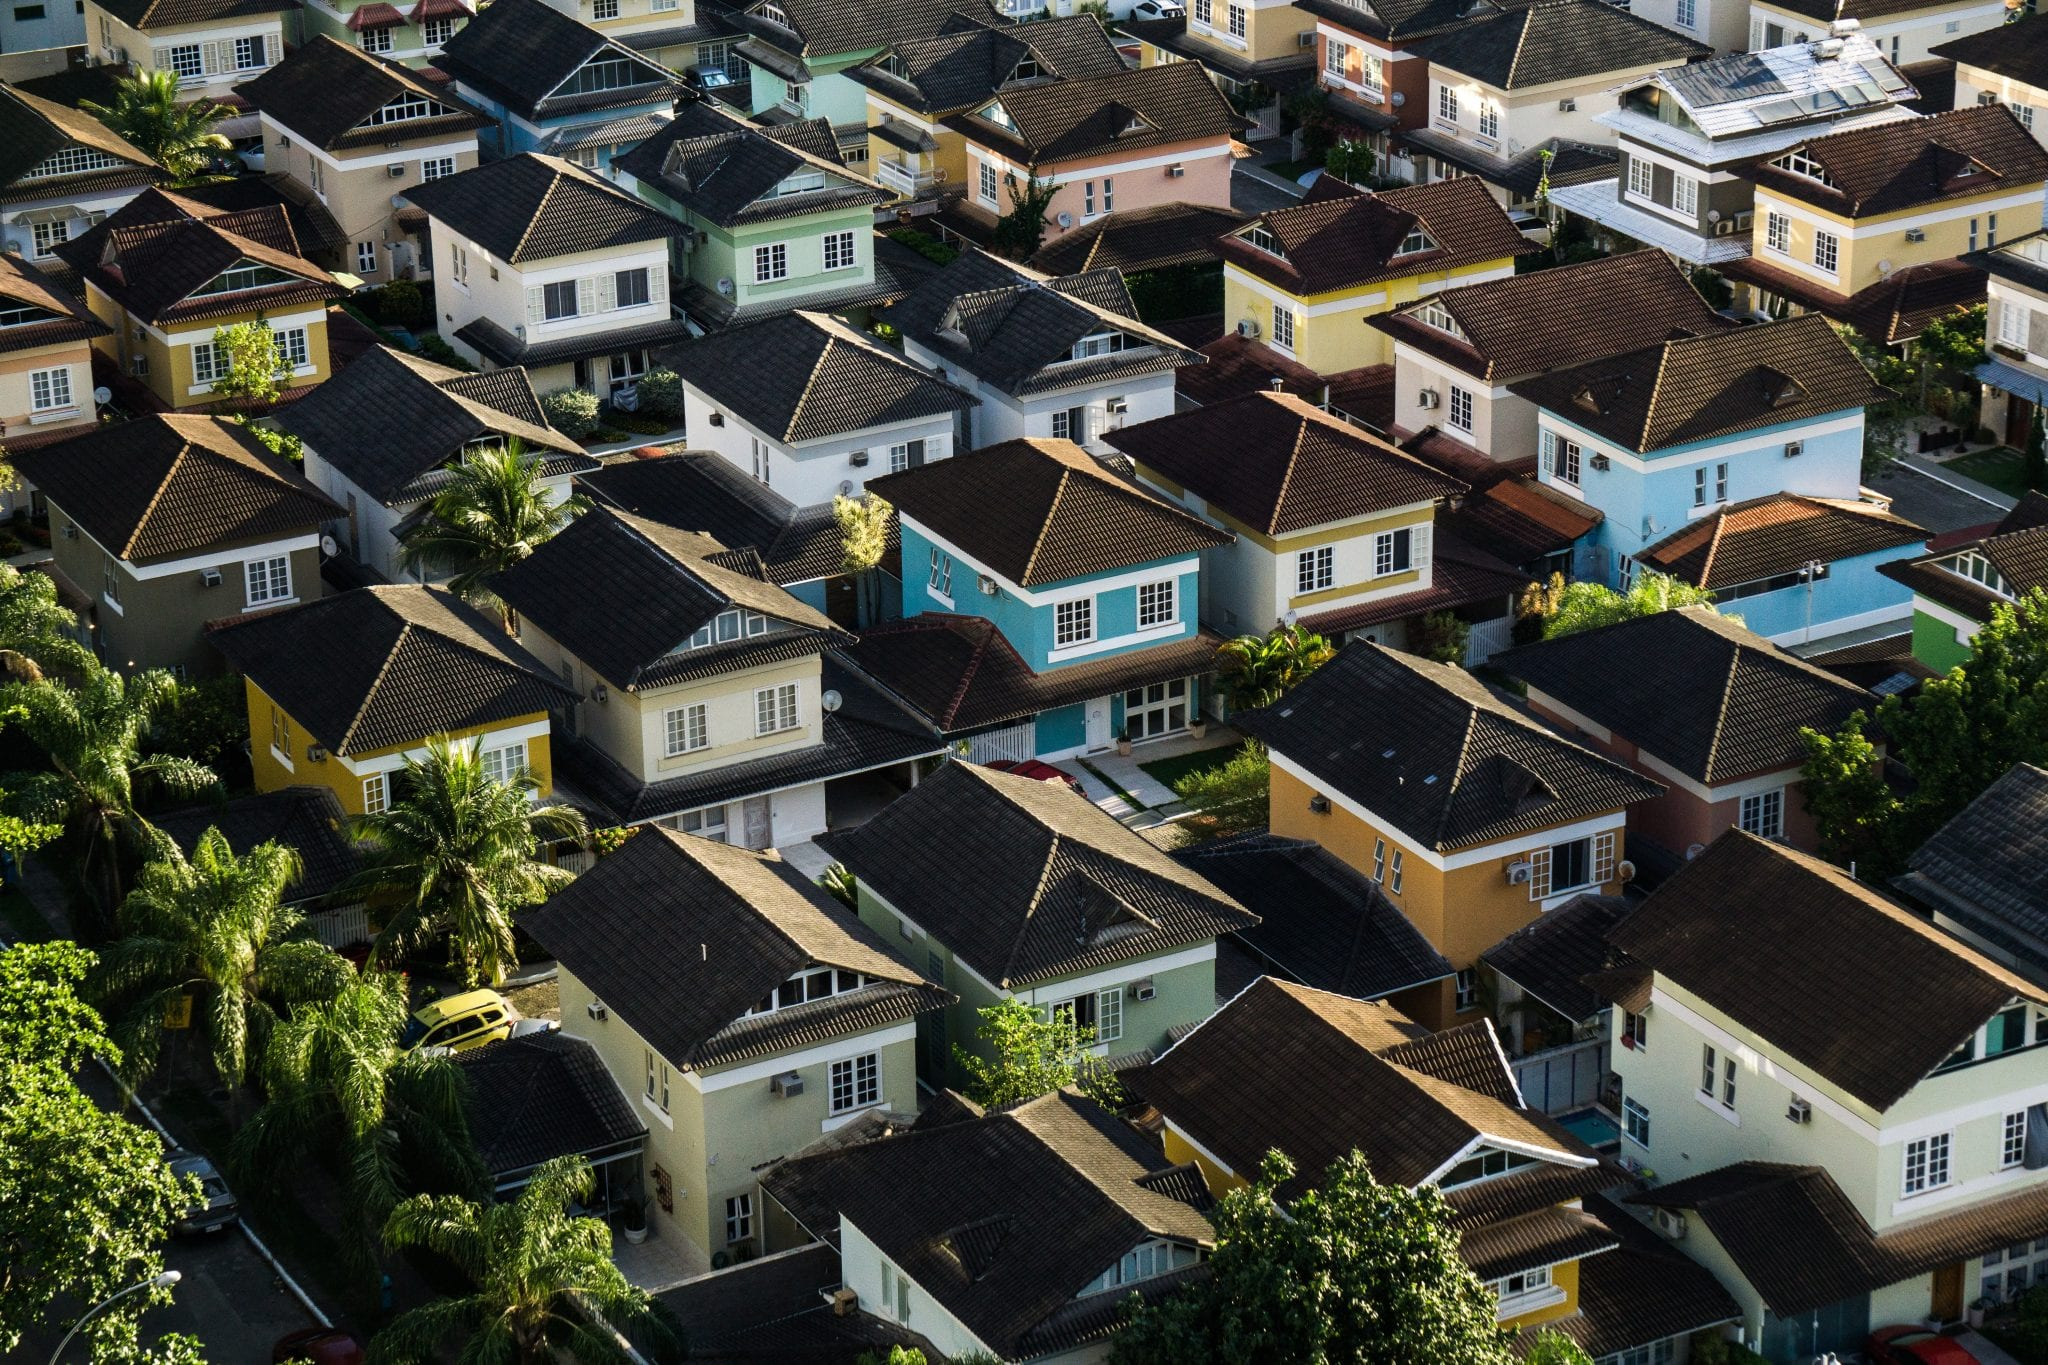 A neighborhood full of many houses, which is exactly what you need in real estate wholesaling.